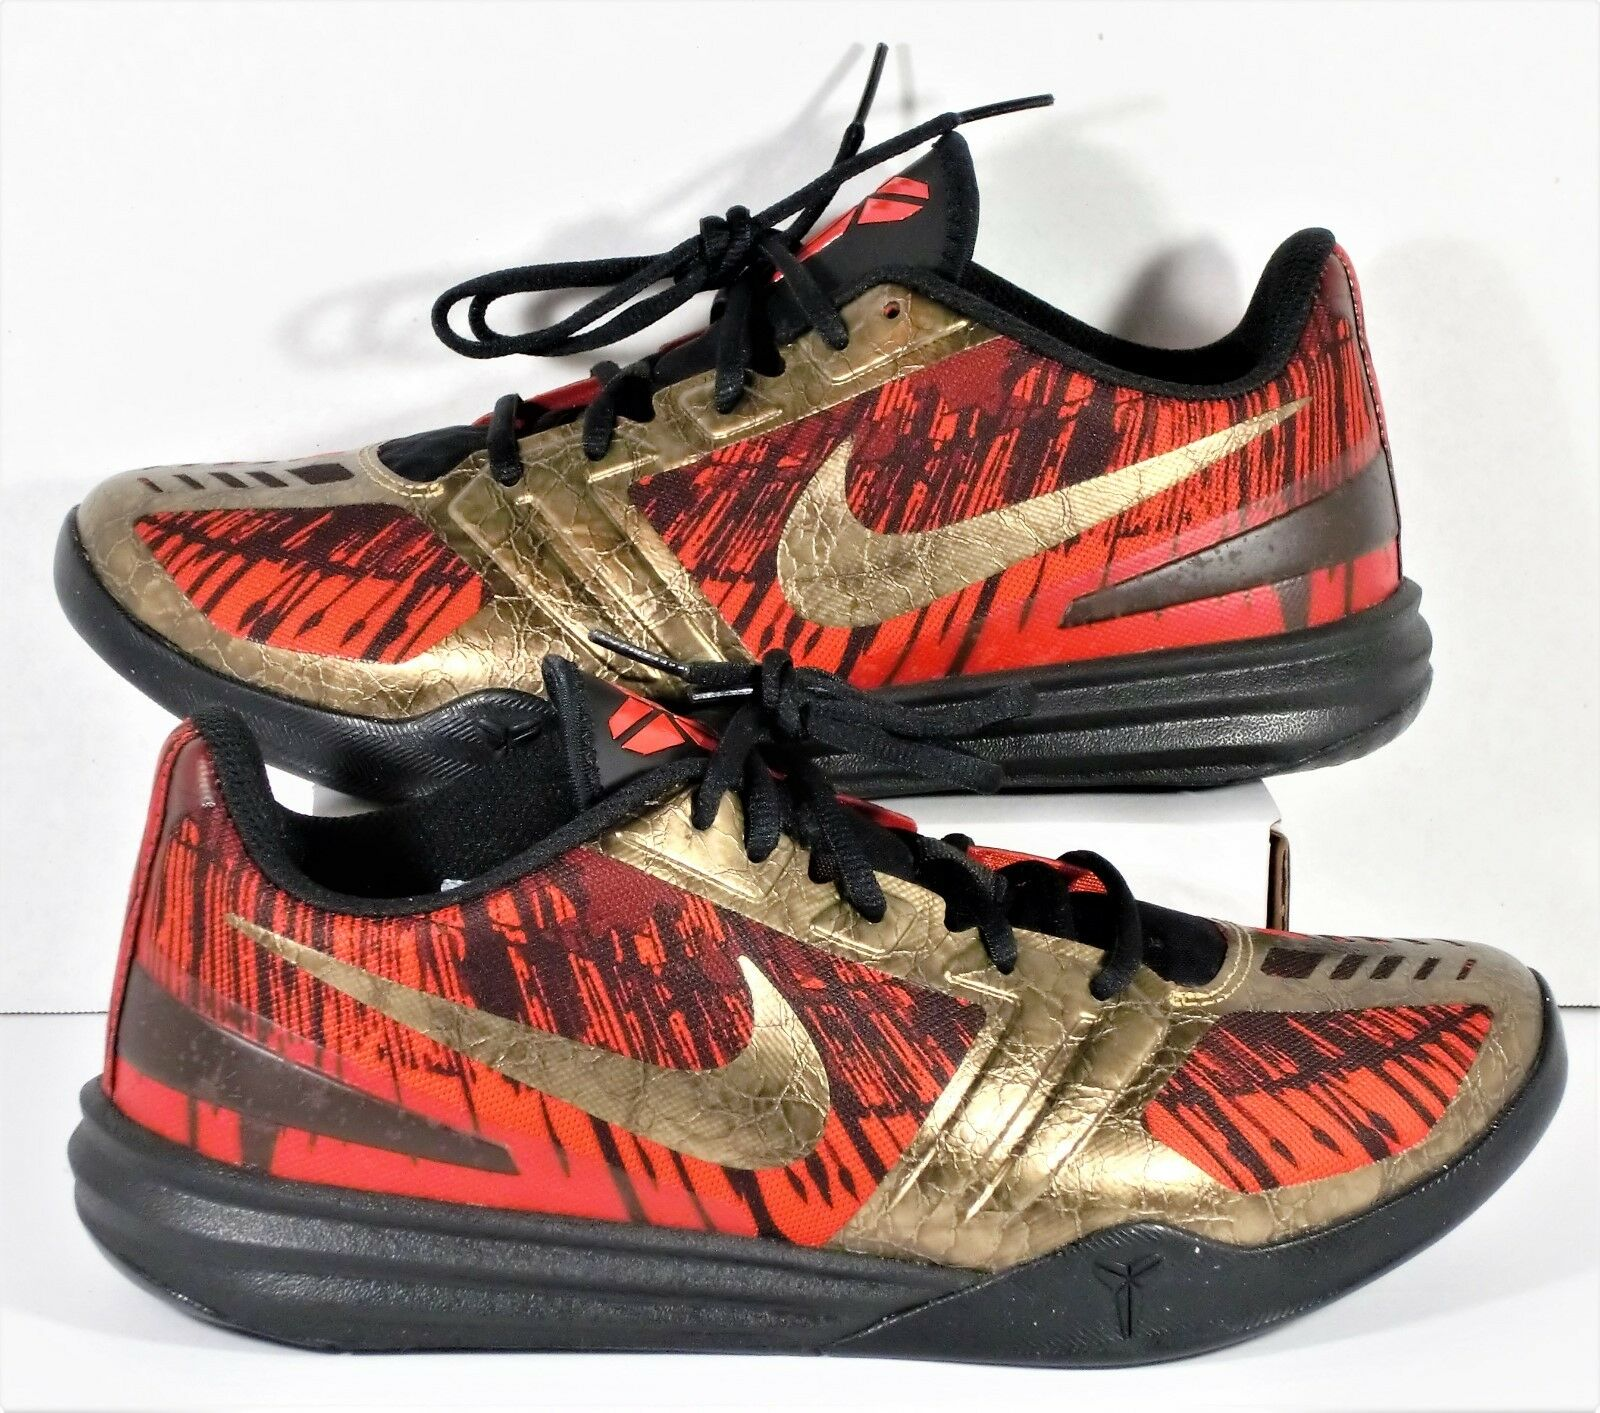 Nike Kobe Mentality Black Metallic Aged Coin Red & Gold Lunarlon Shoe Sz 9 NEW